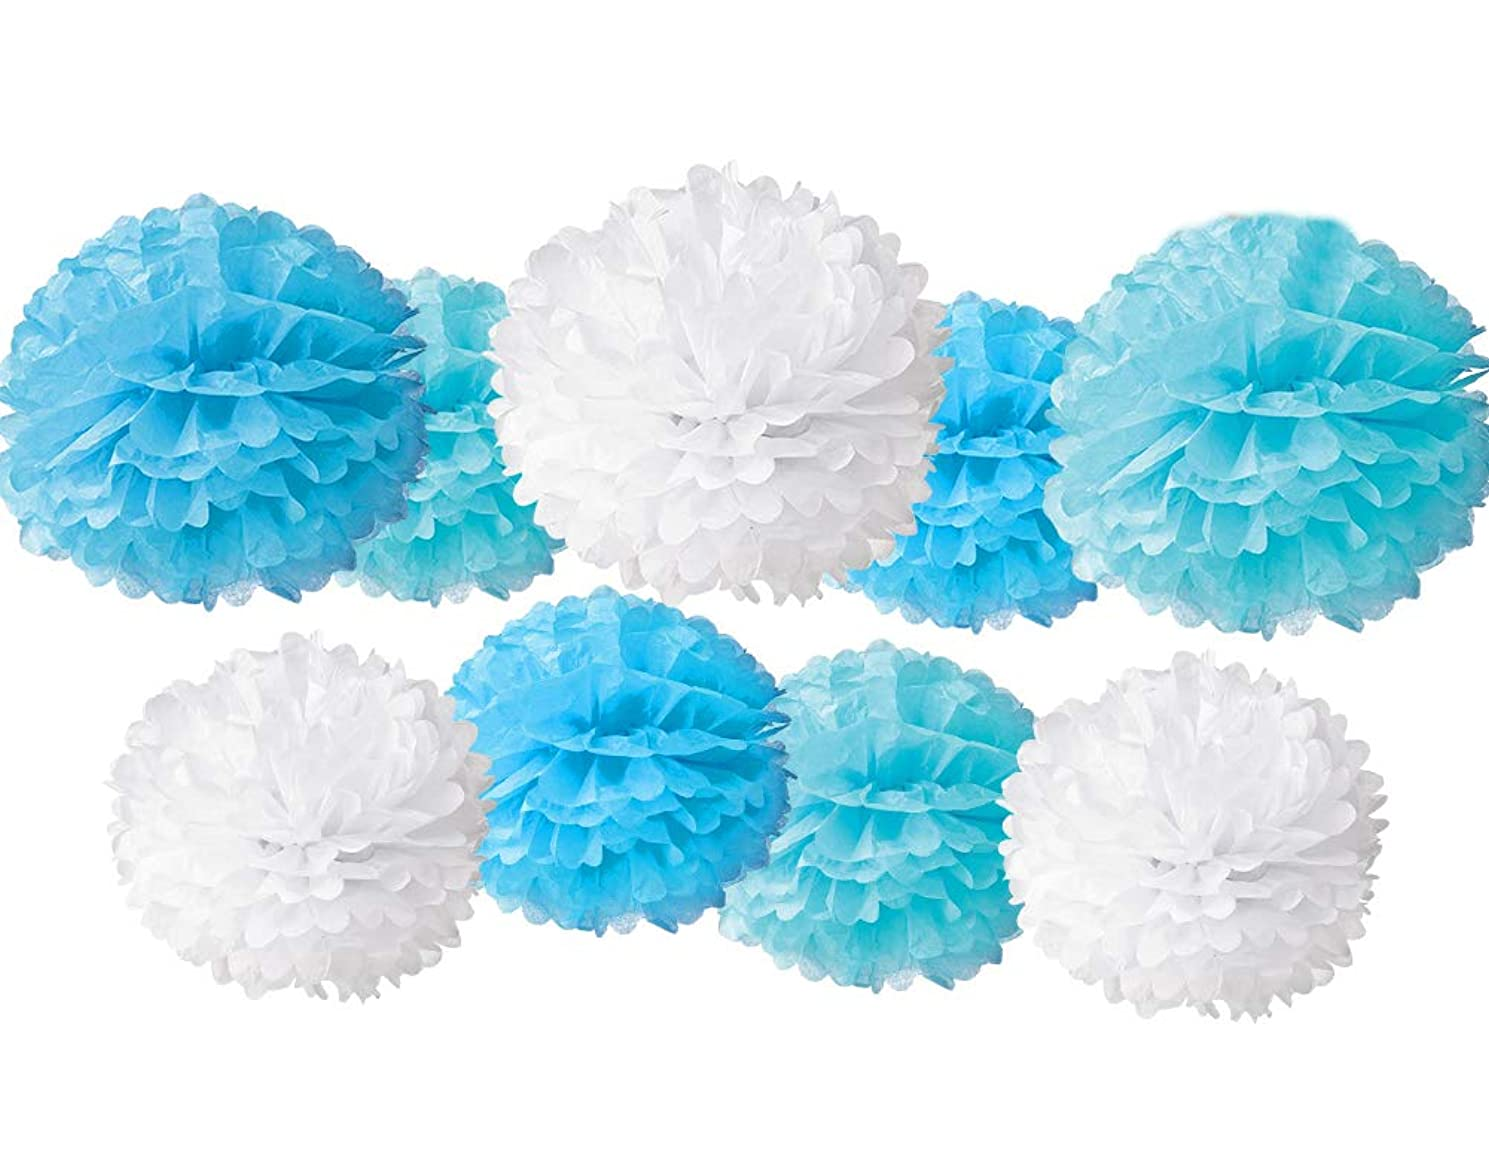 9 Pcs Party Supplies Tissue Paper Pom Poms Kit for Birthday Party Decorations - Baby Shower Decorations - Bridal Shower Decorations - Wedding Decorations - Bachelorette(Sky Blue,Wathet,White)